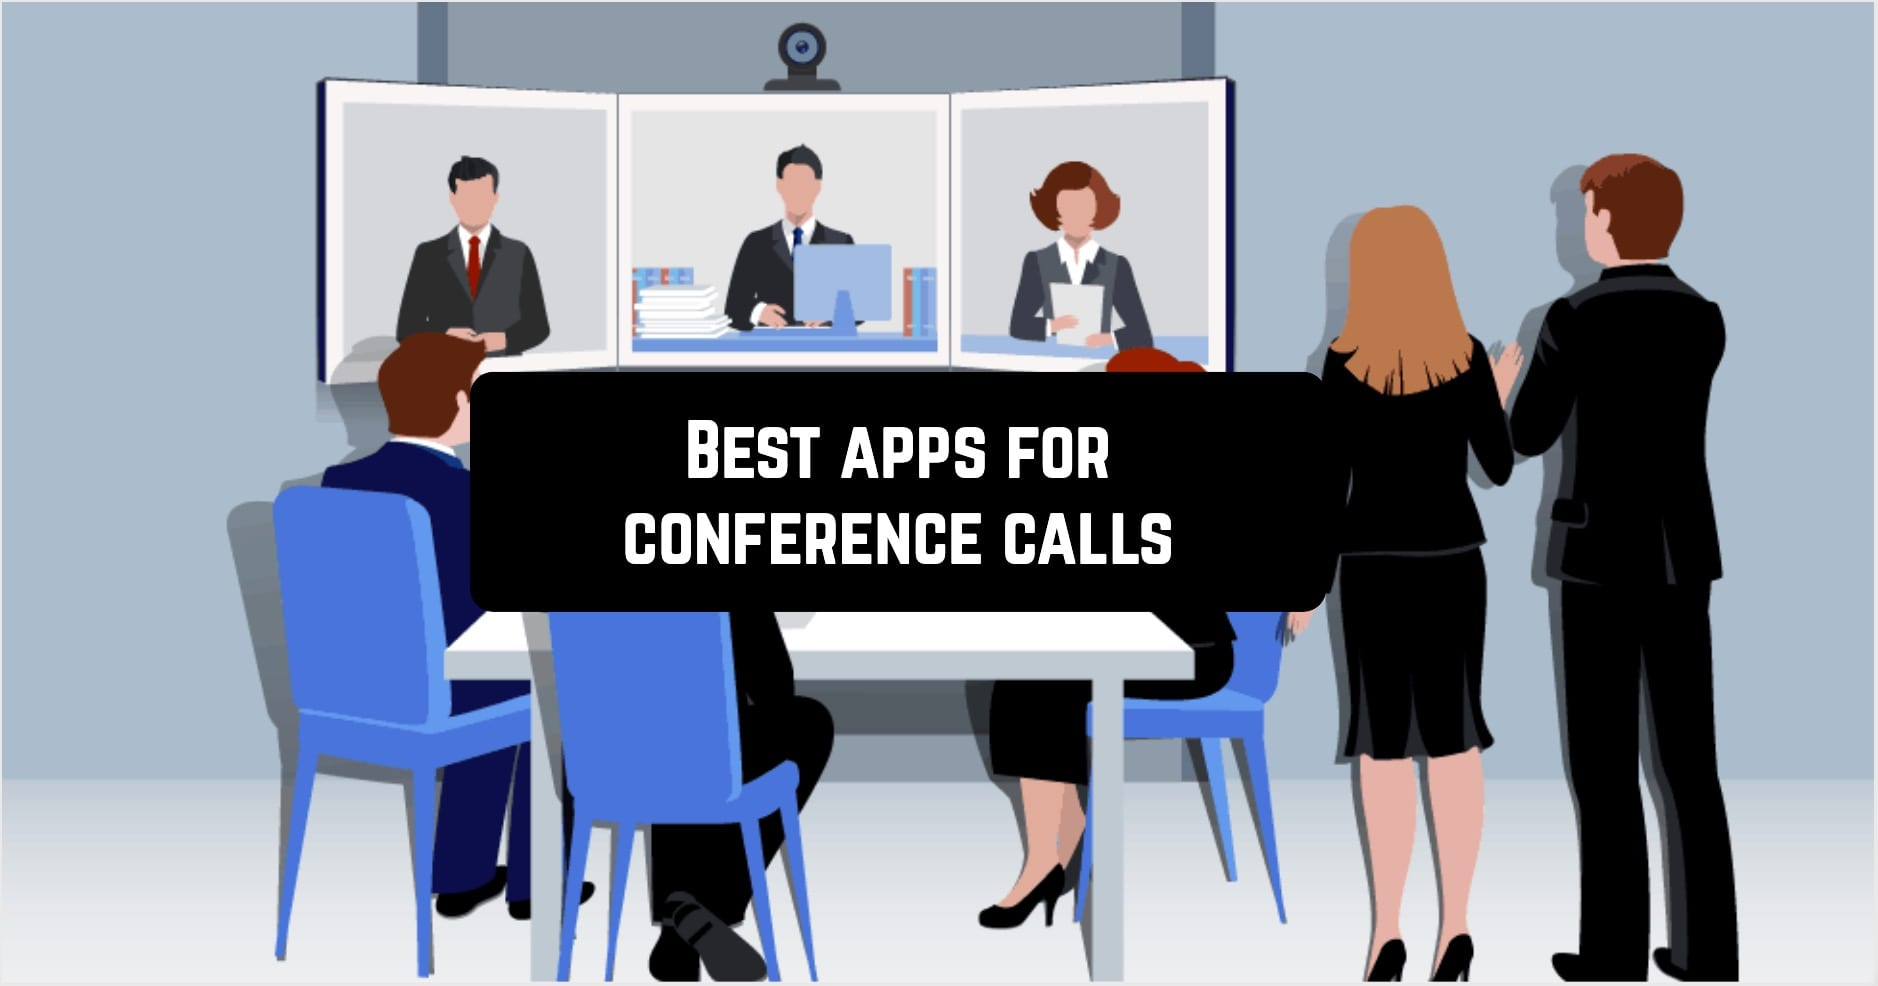 Best apps for conference calls